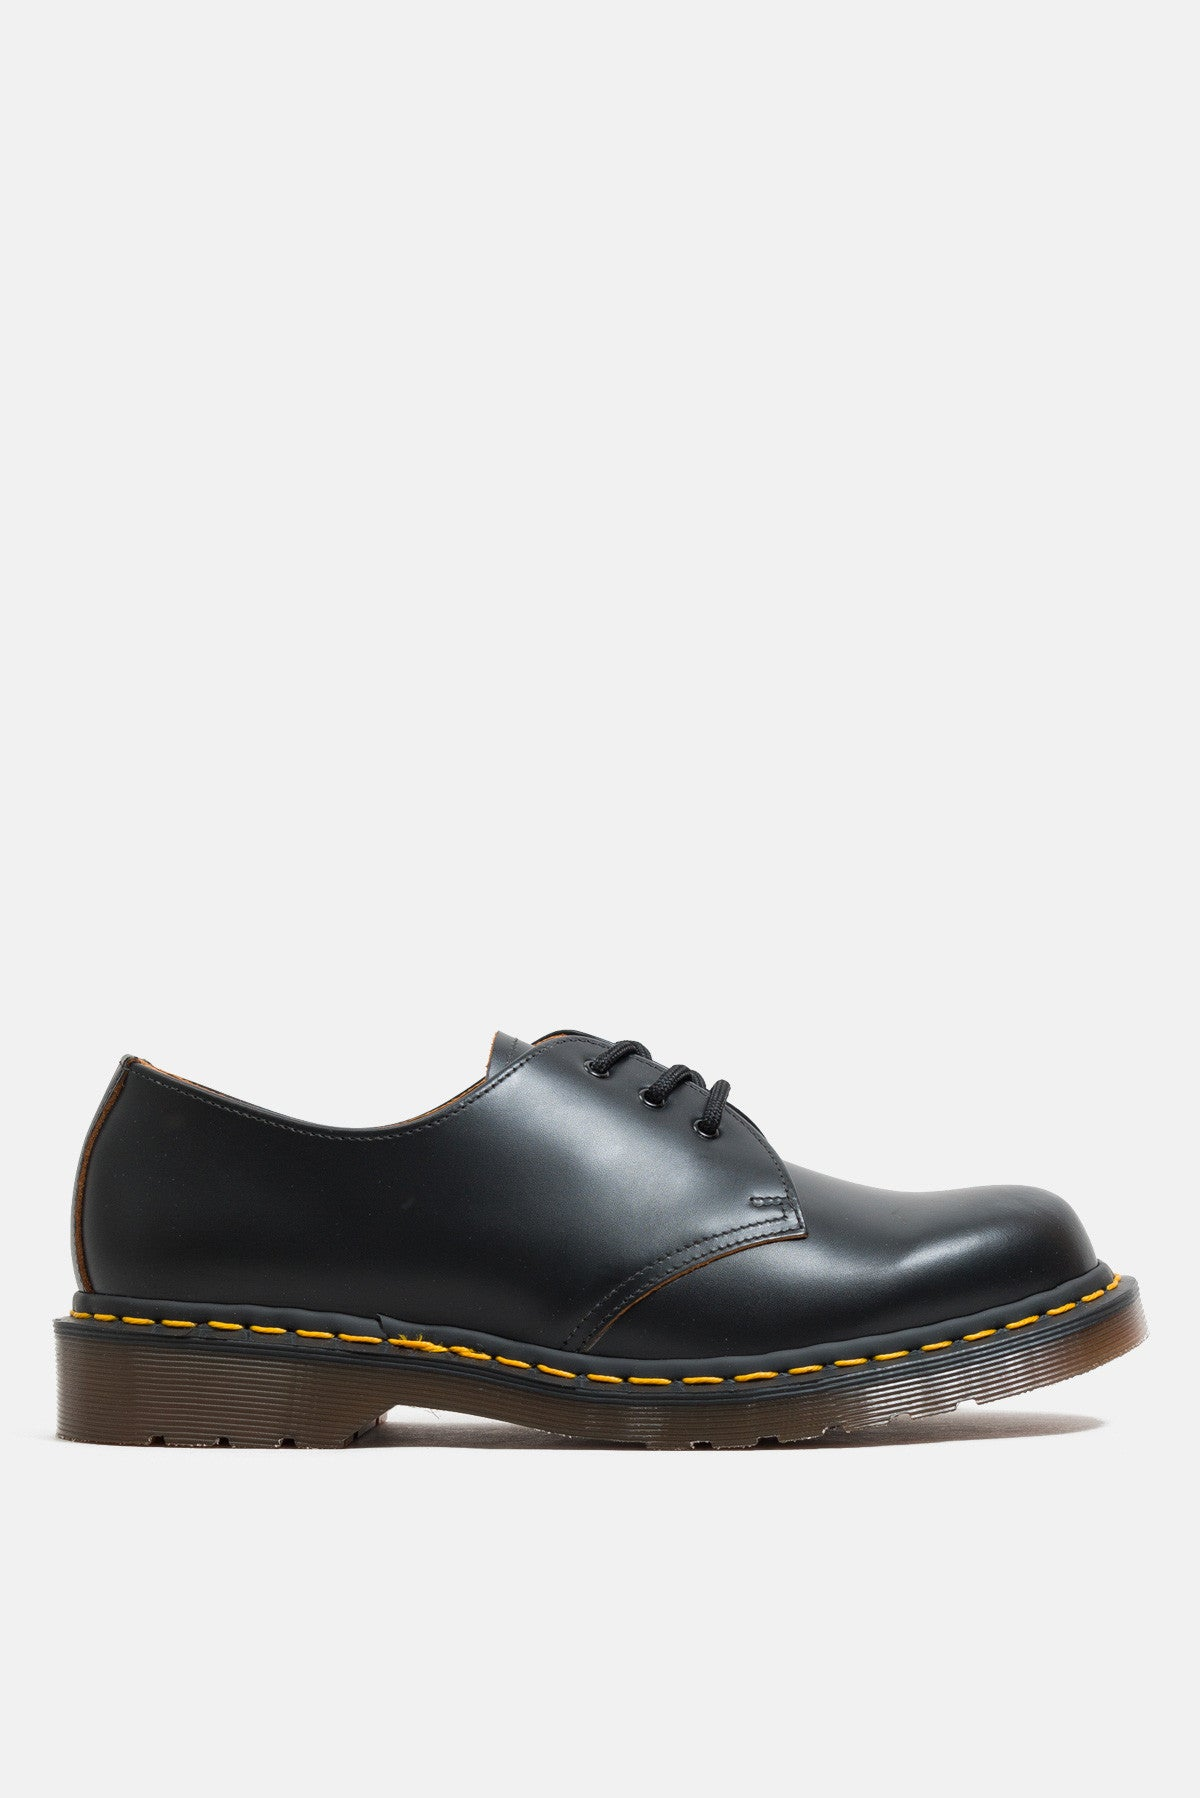 5ab9c4d685f Dr Martens MIE Vintage 1461 Dress Shoes available from Priory